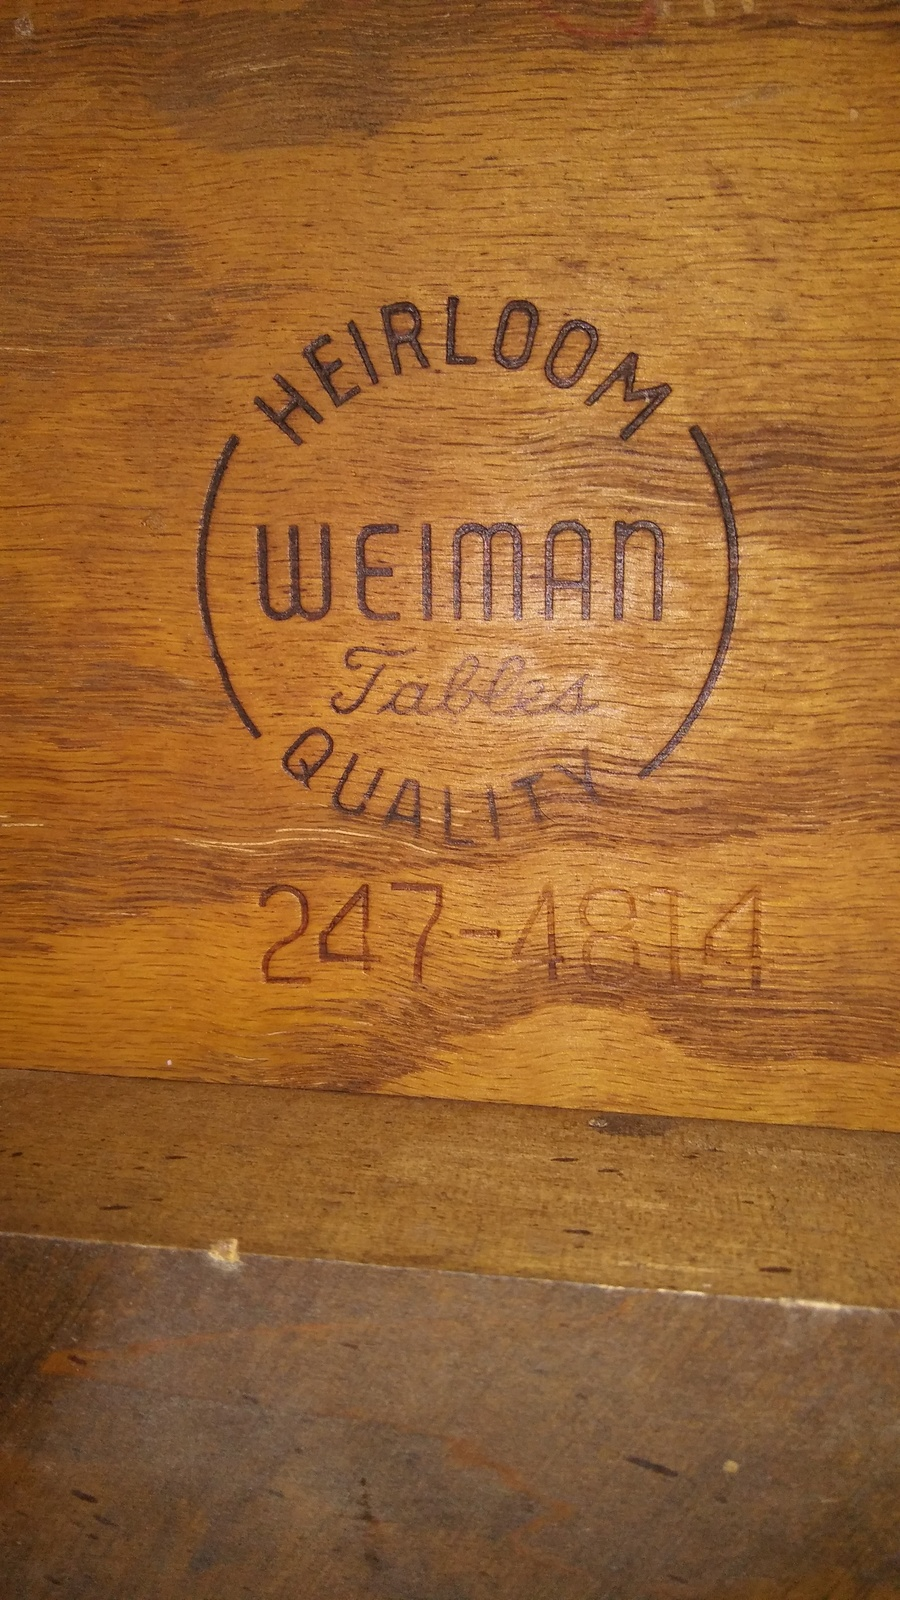 I Have A Weiman Heirloom Quality End Table No 2474814 Can You